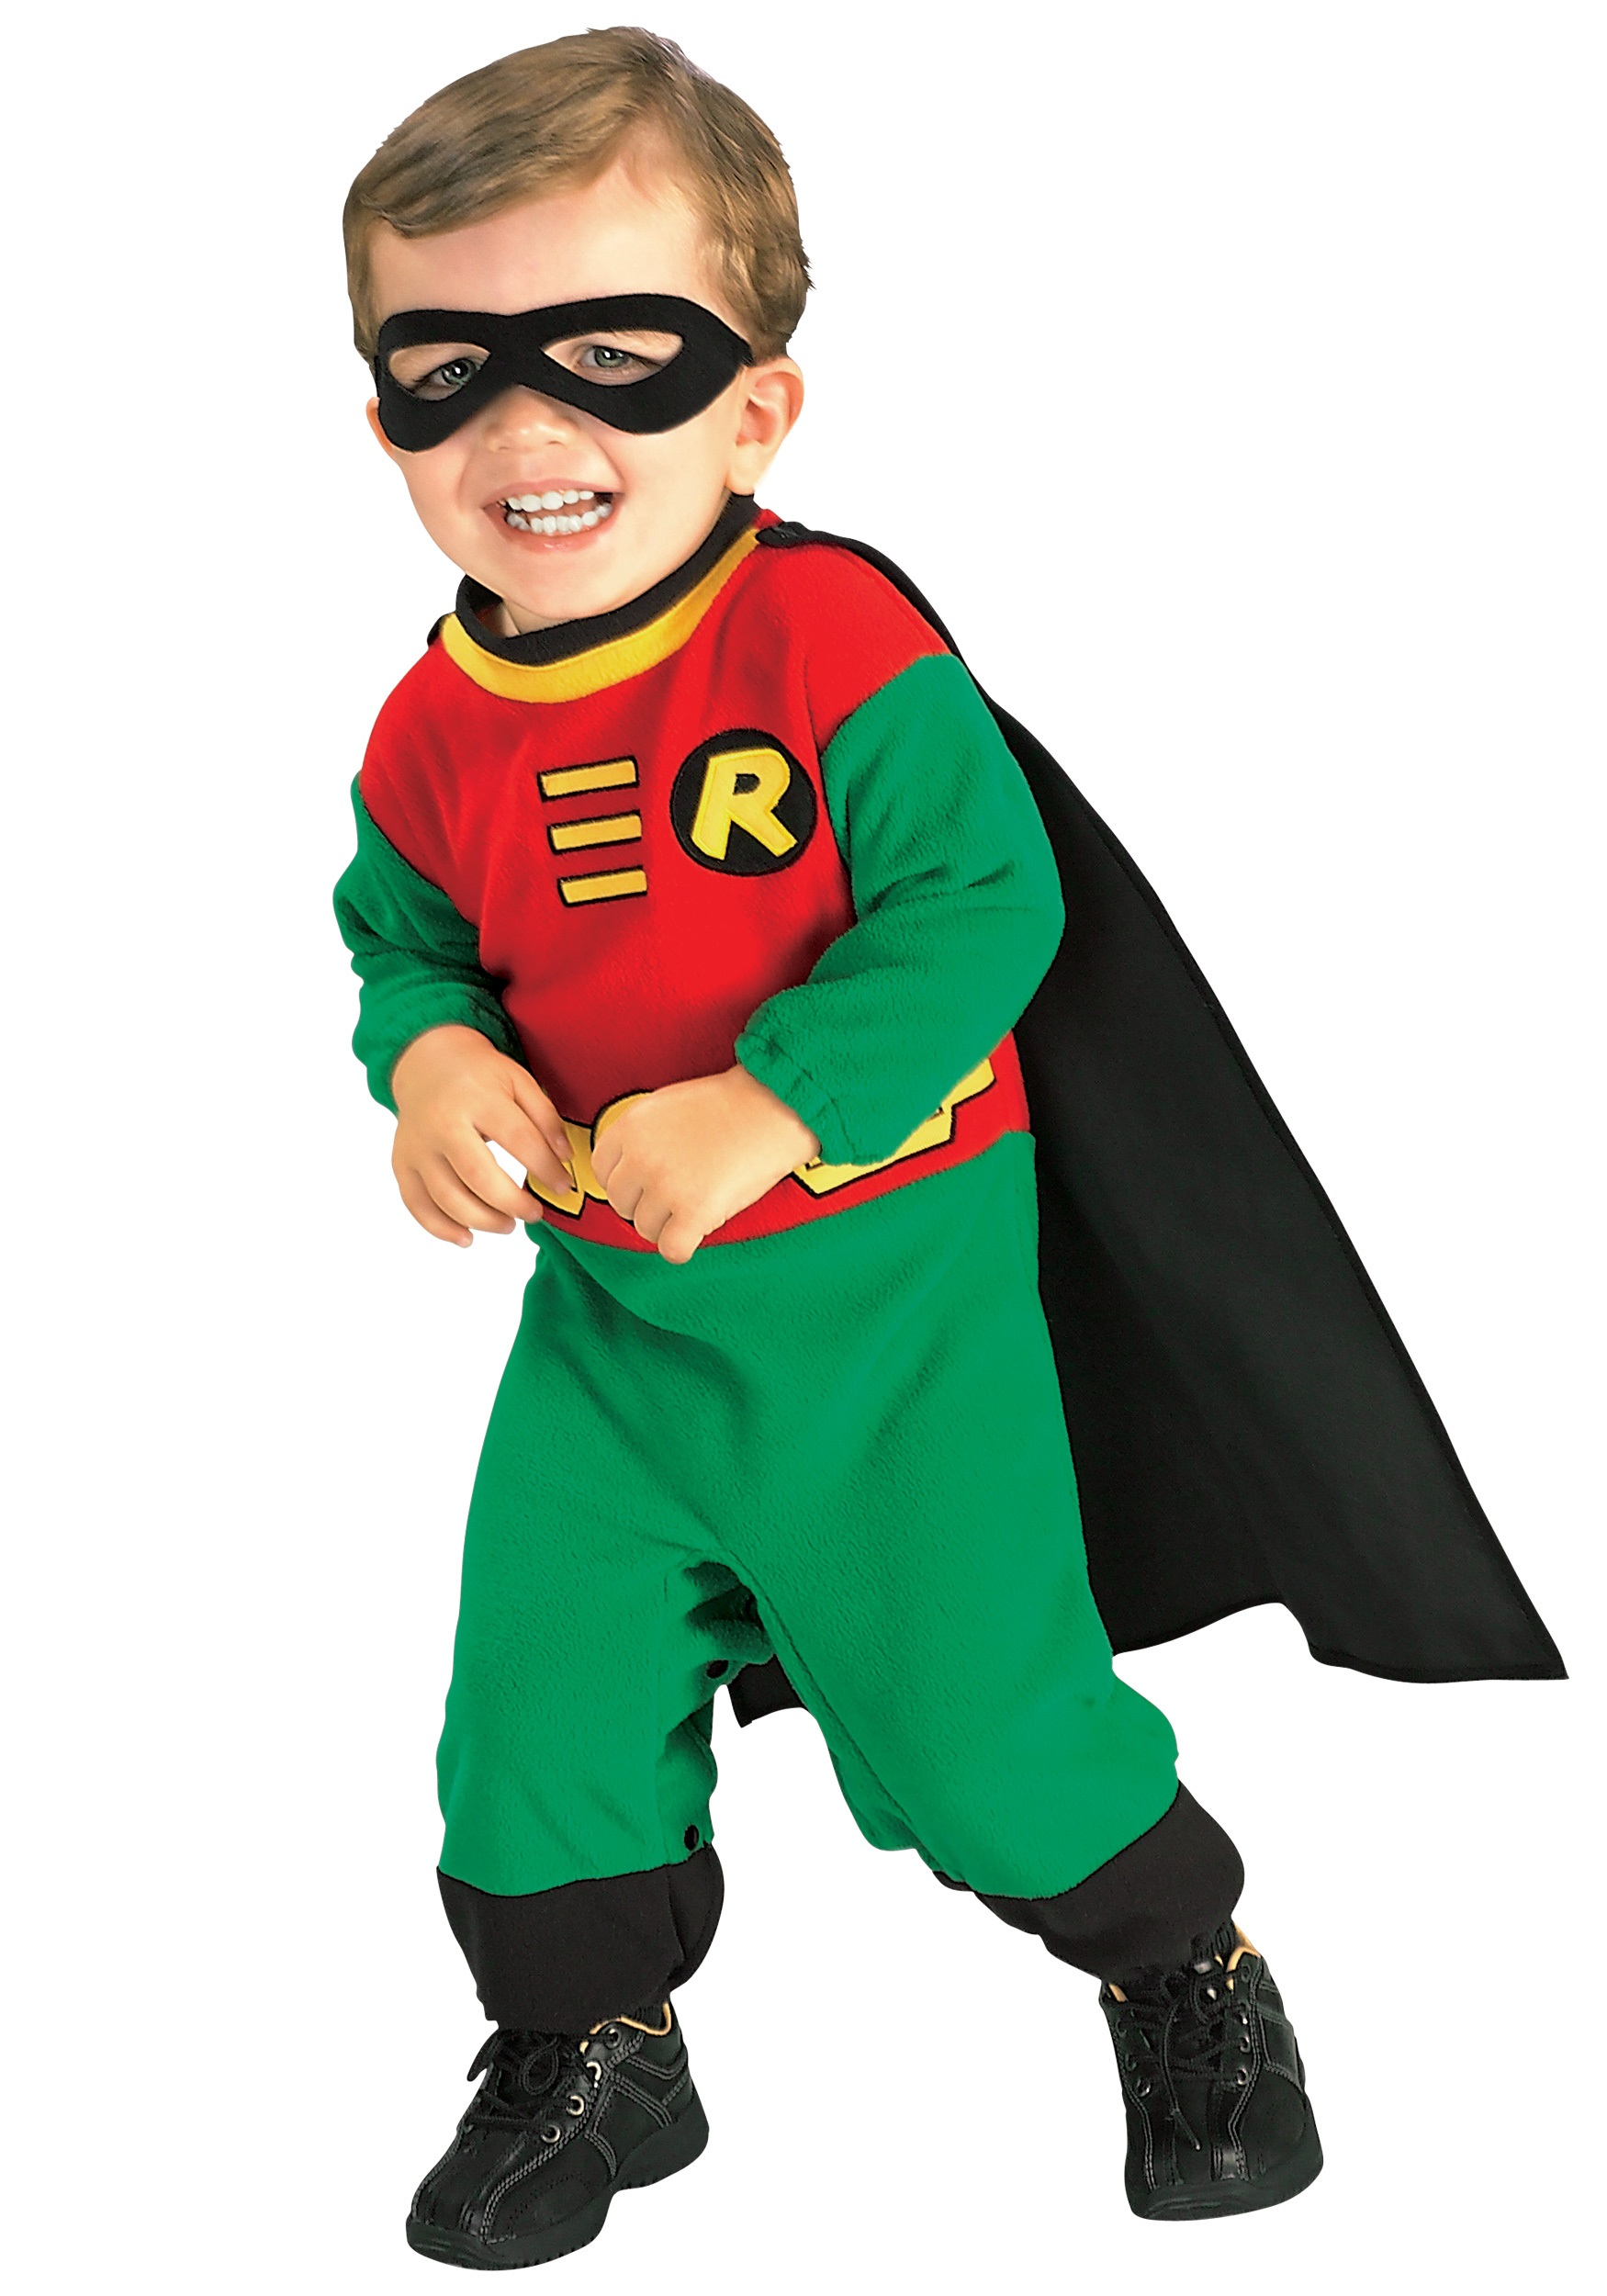 Baby Robin Costume  sc 1 st  Halloween Costume & Infant Robin Superhero Costume - Newborn Batman Robin Costumes